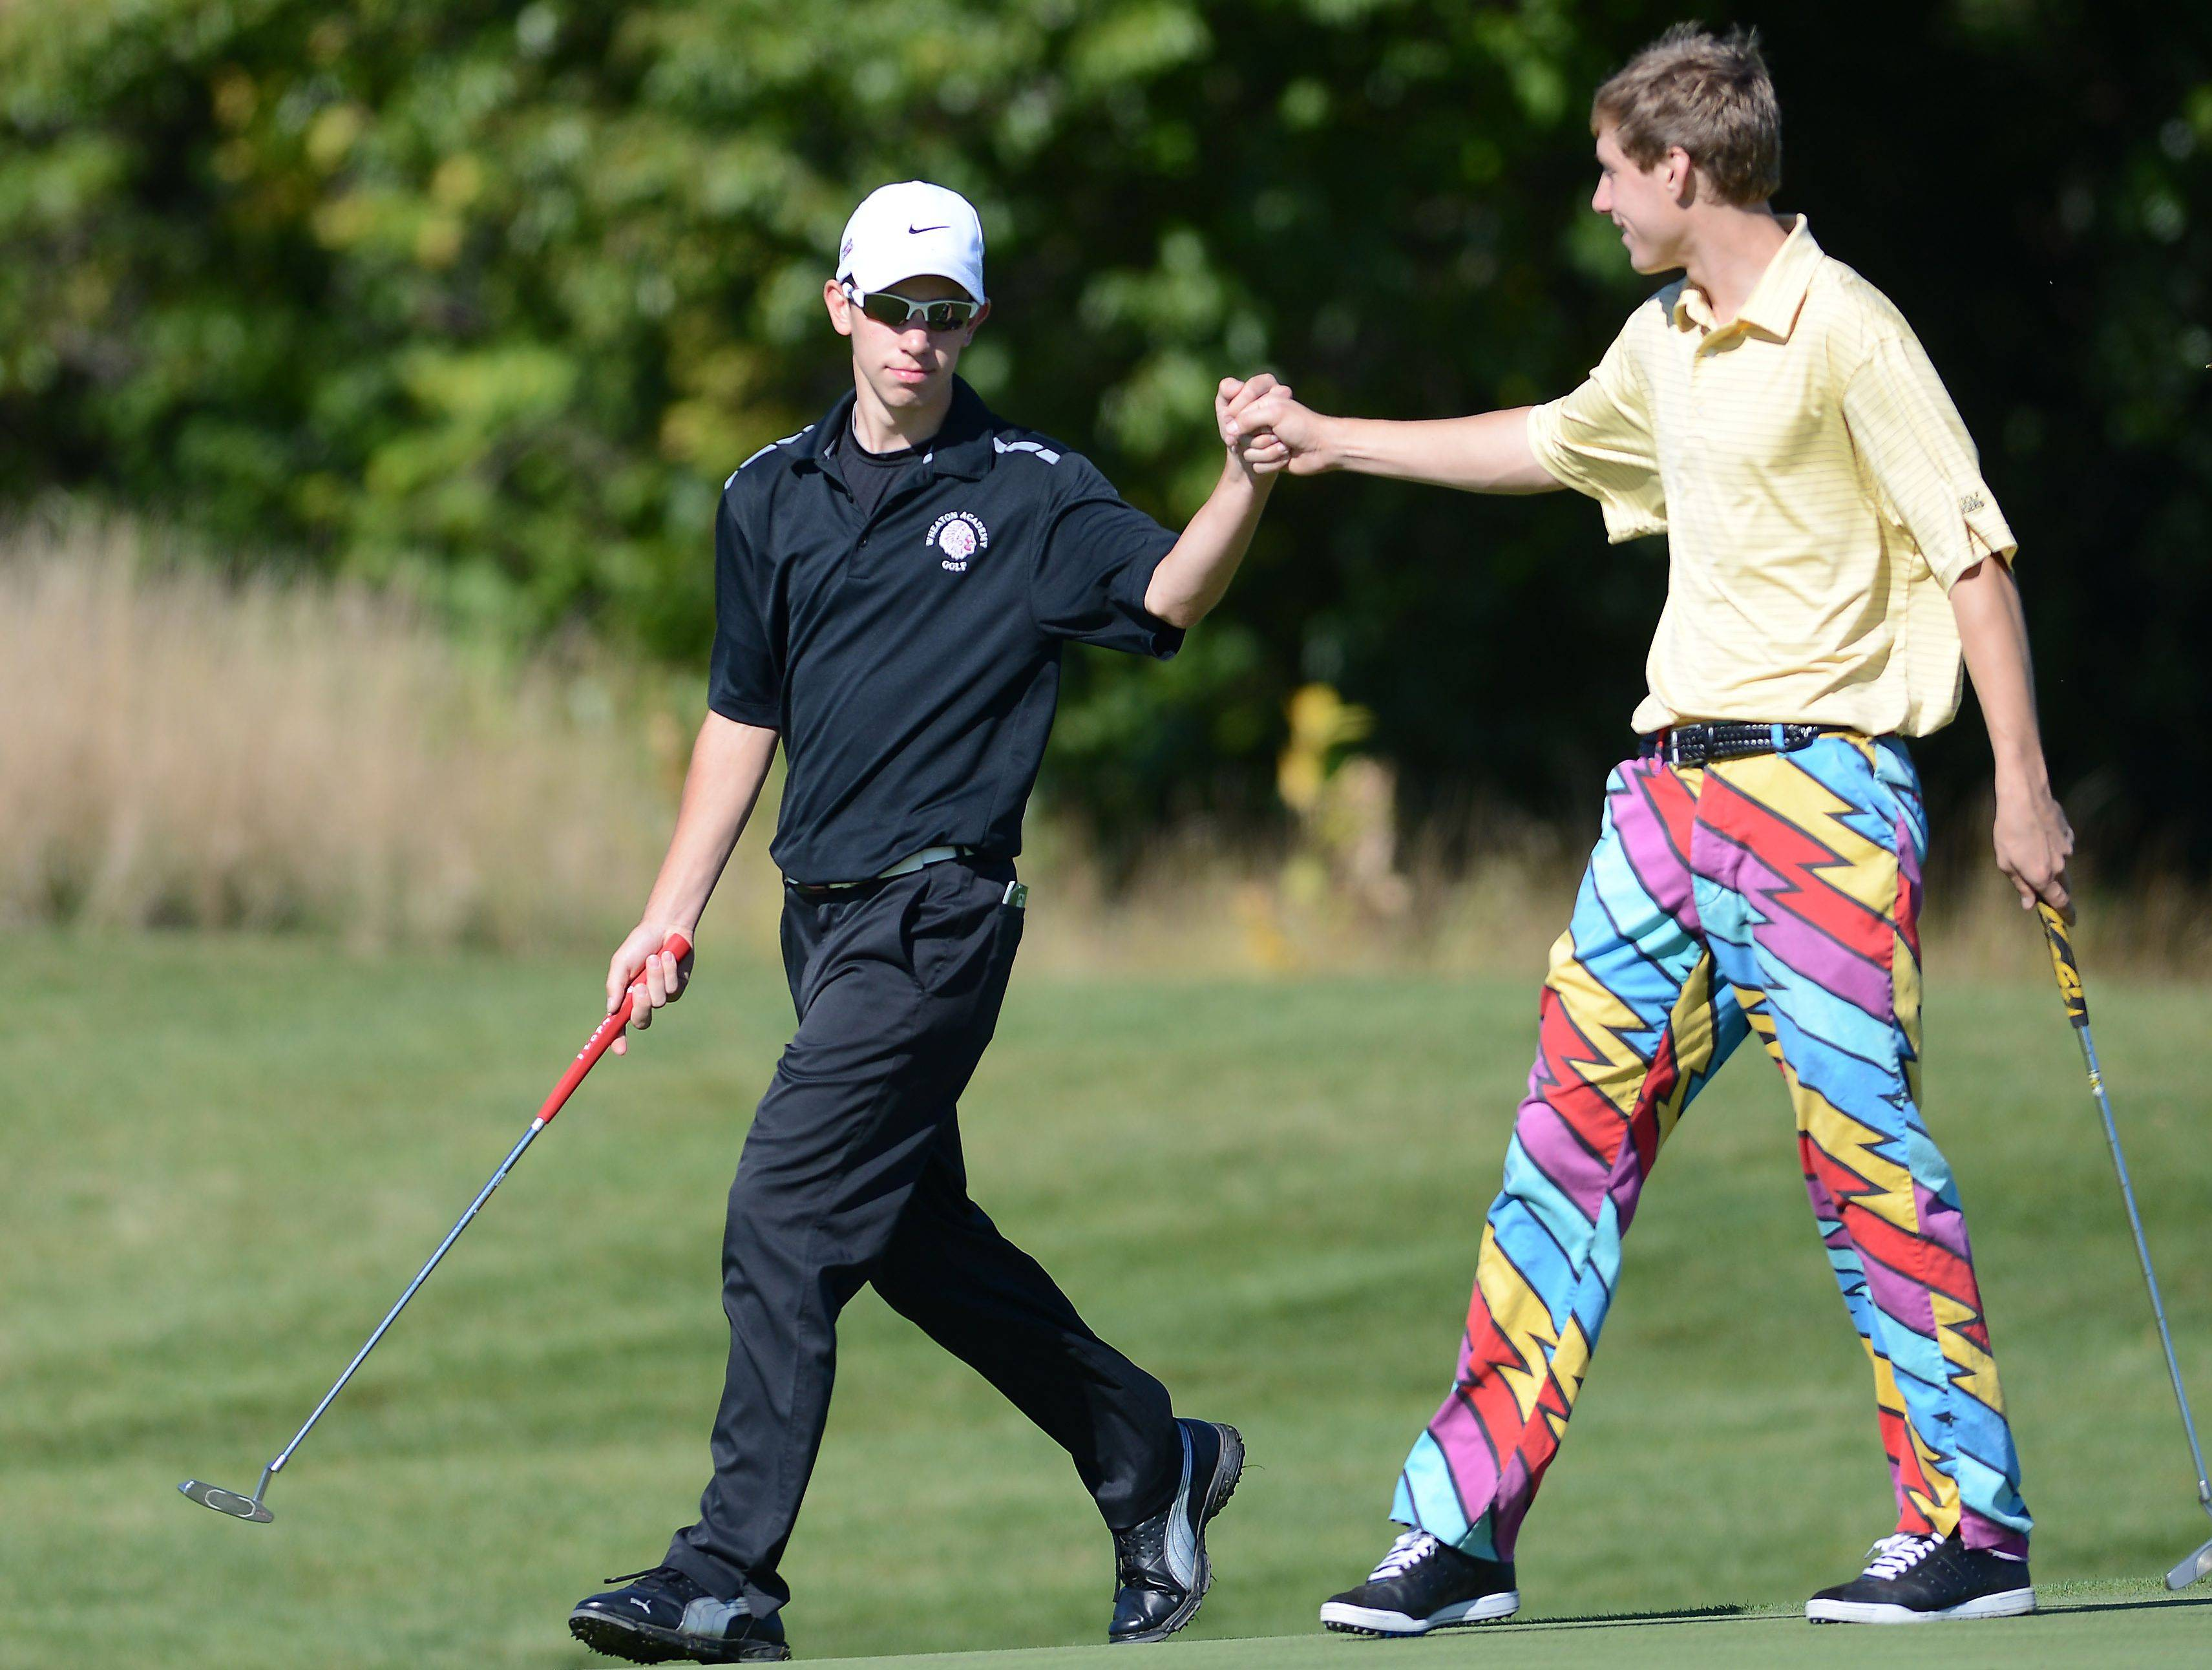 Wheaton Academy's Zack Spear, left, gets a fist bump from Aurora Central Catholic's Justin Prince after knocking in a 30+ foot putt on the first hole during Tuesday's regional golf action at Phillips Park in Aurora.